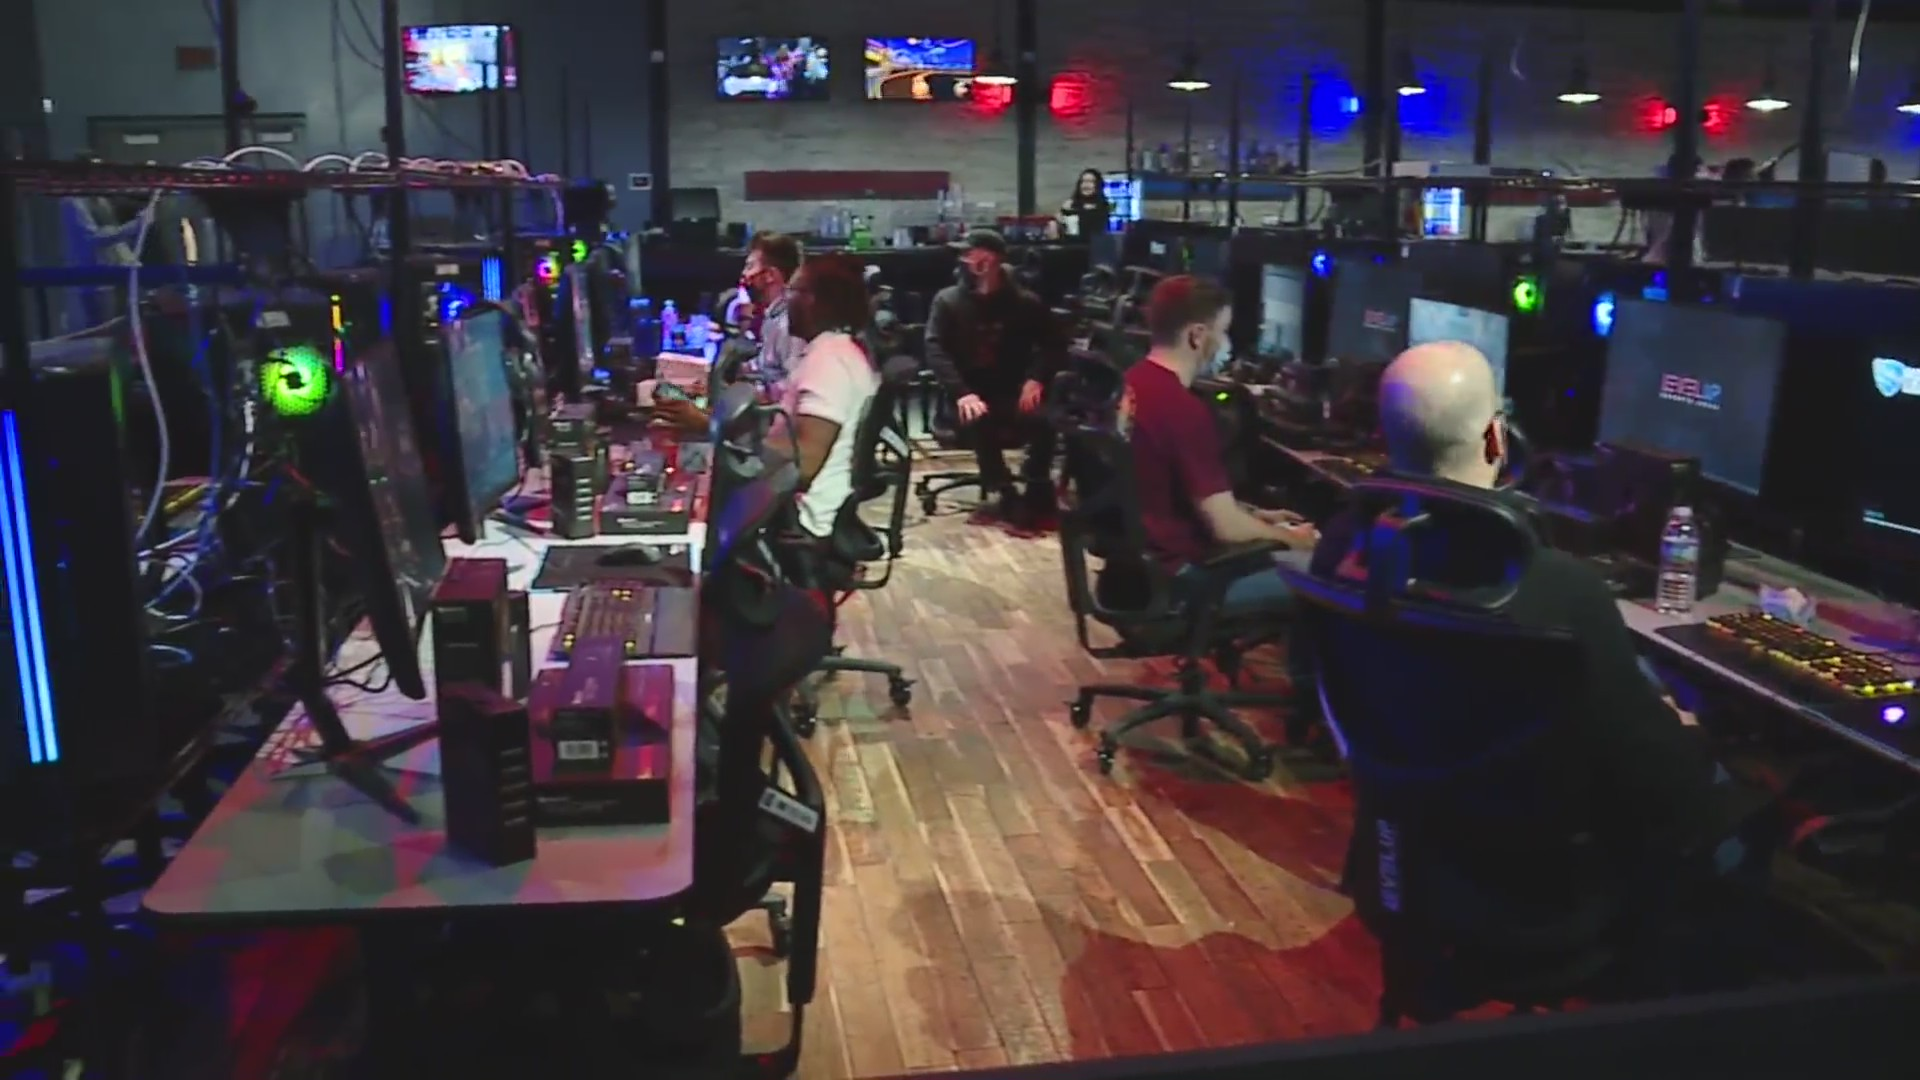 LEVELUP esports arena in Overland Park